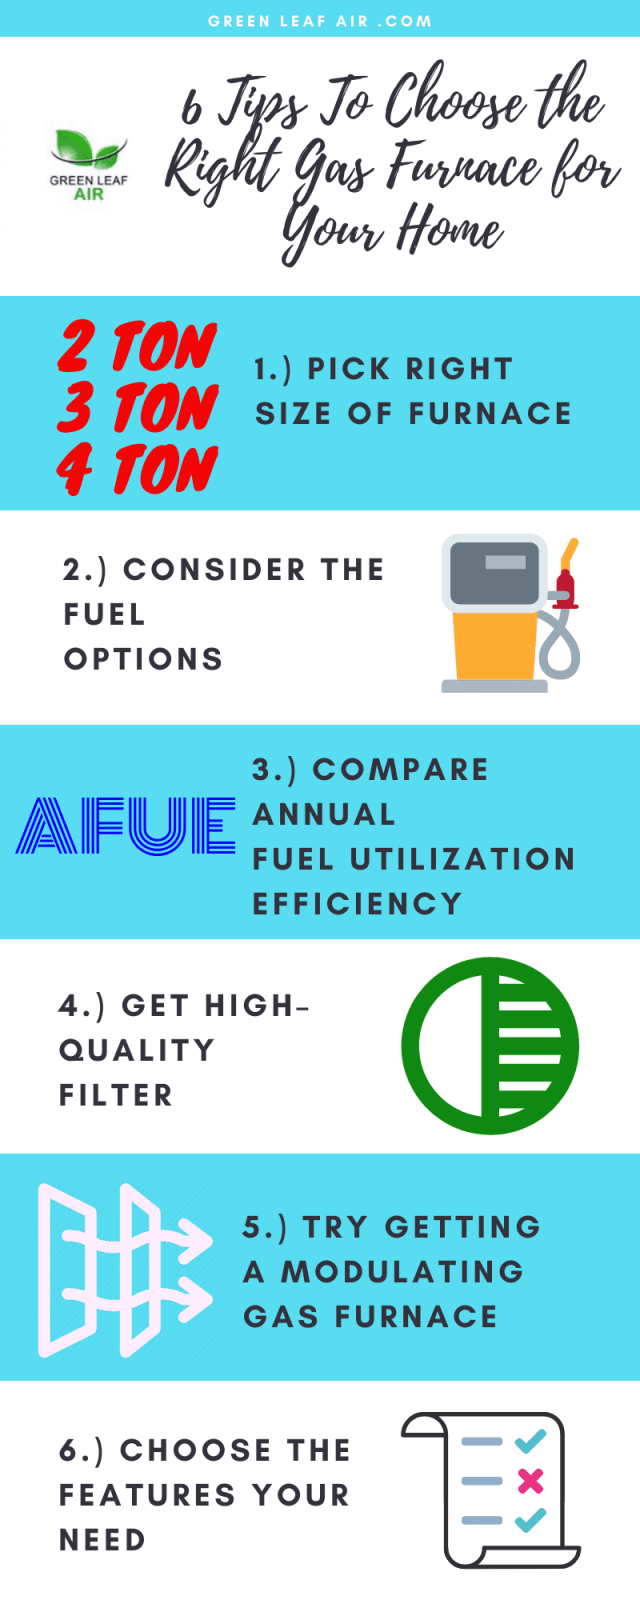 6 Tips To Choose the Right Gas Furnace for Your Home